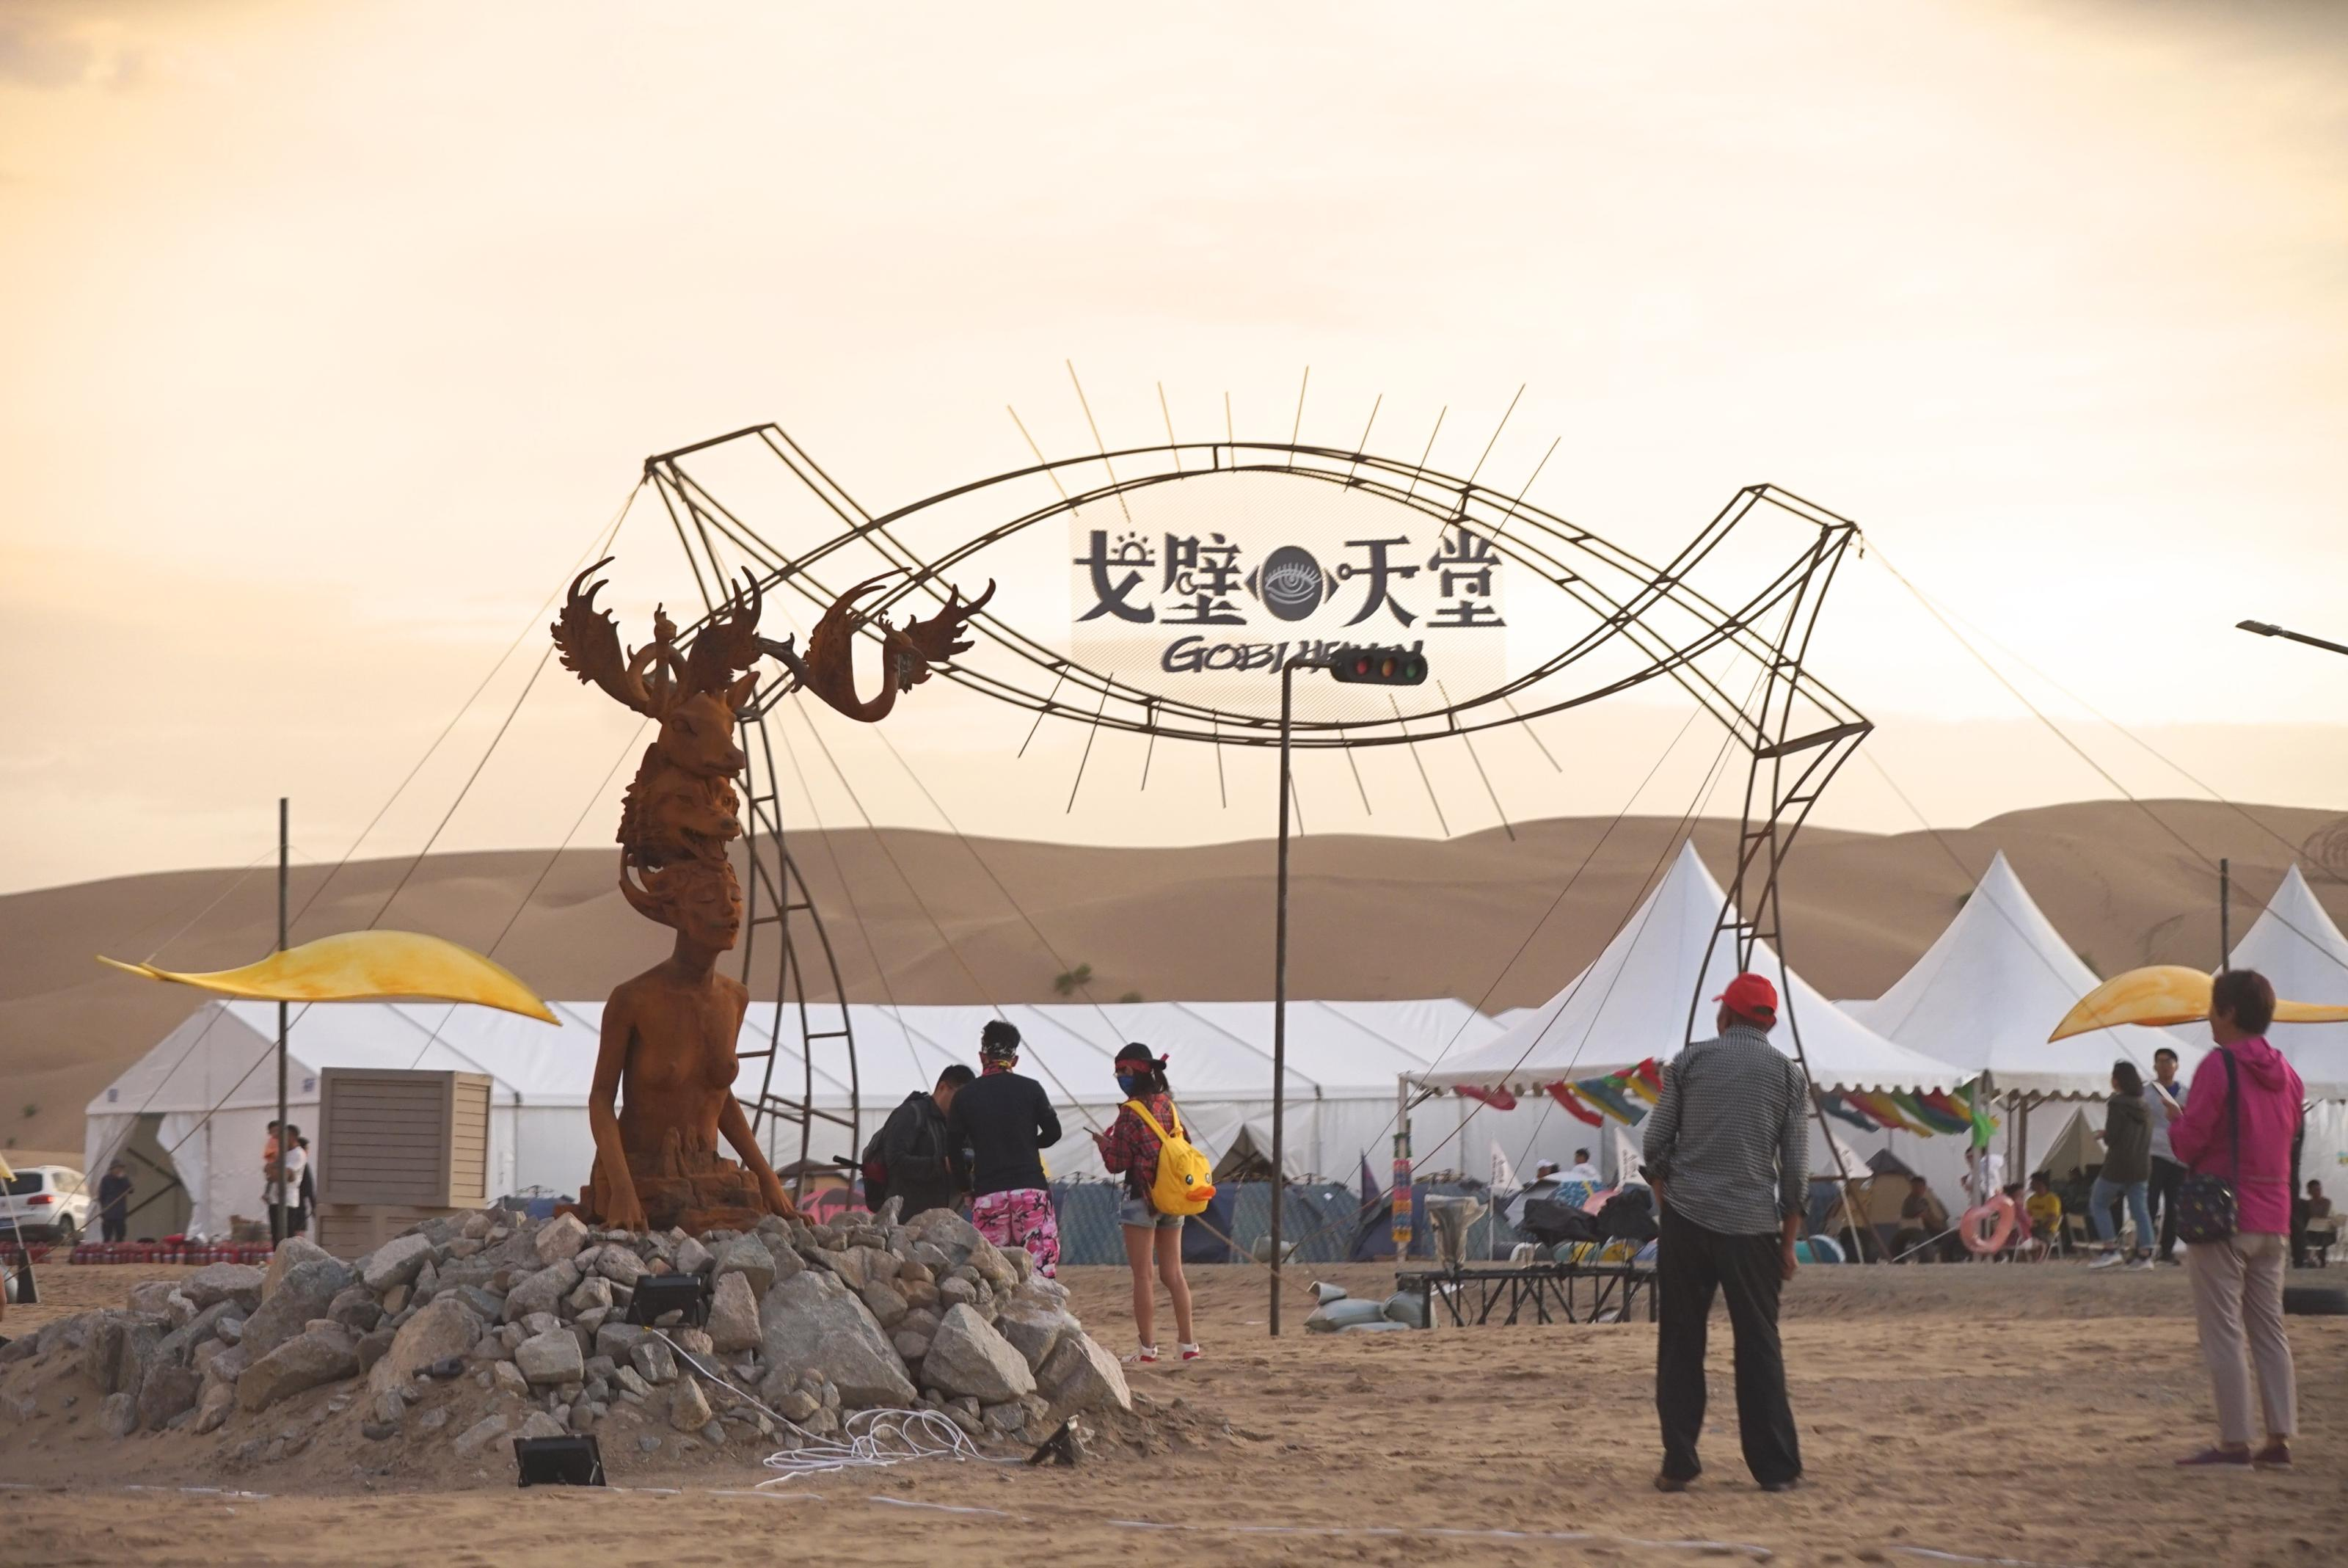 Inside Gobi Heaven, China's Burning Man-style desert festival